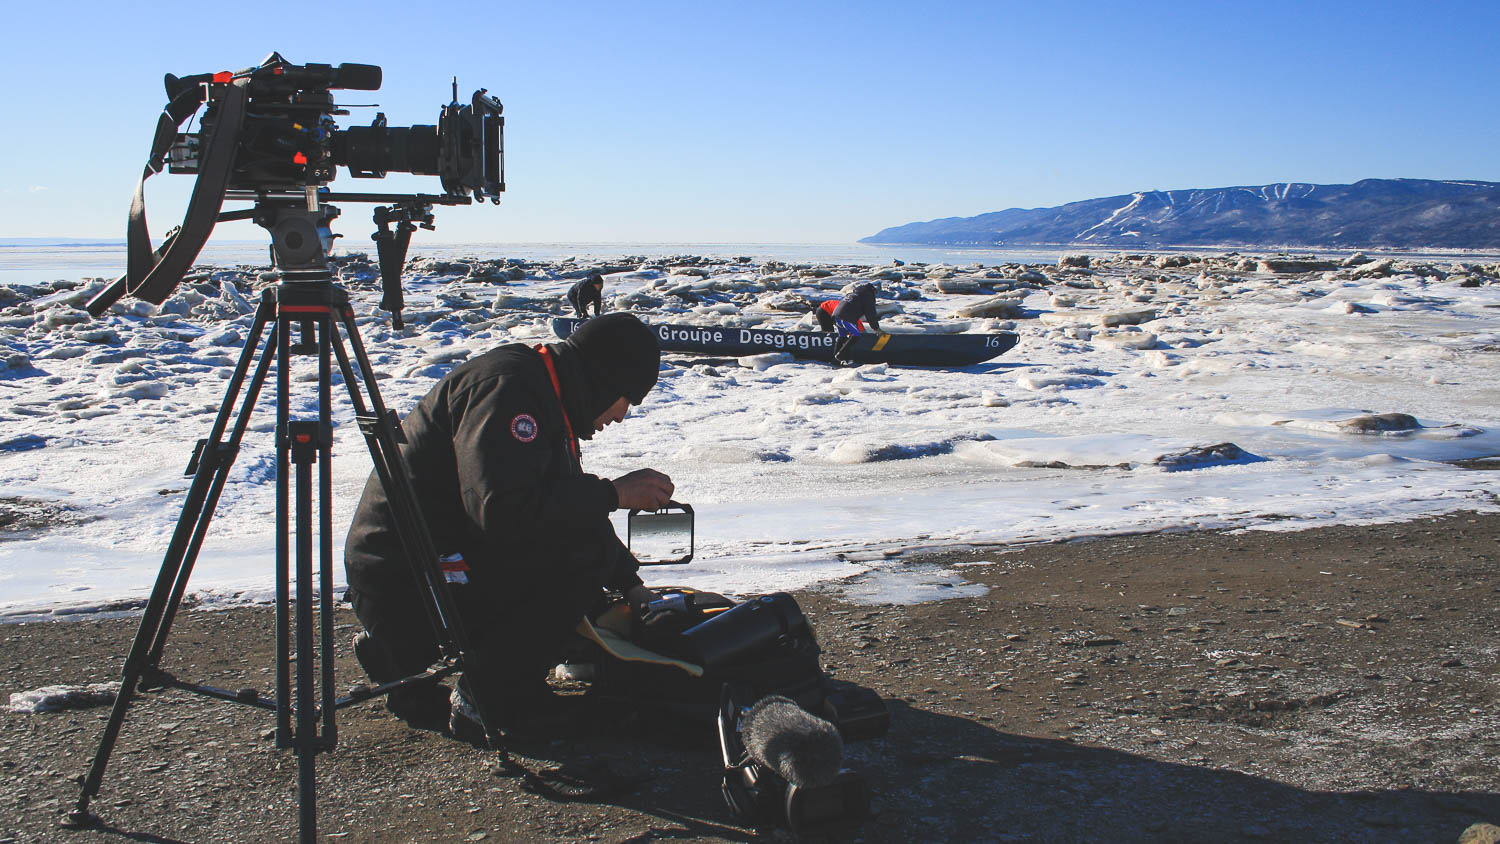 Filming of the TV Show Les Grands Sentiers living winter. The team was at l'Isle-aux-Coudres, in the middle of the Saint-Laurent river during winter to film an ice canoe competition. Director photo Richard Duquette changing a filter glass on the shore of the island